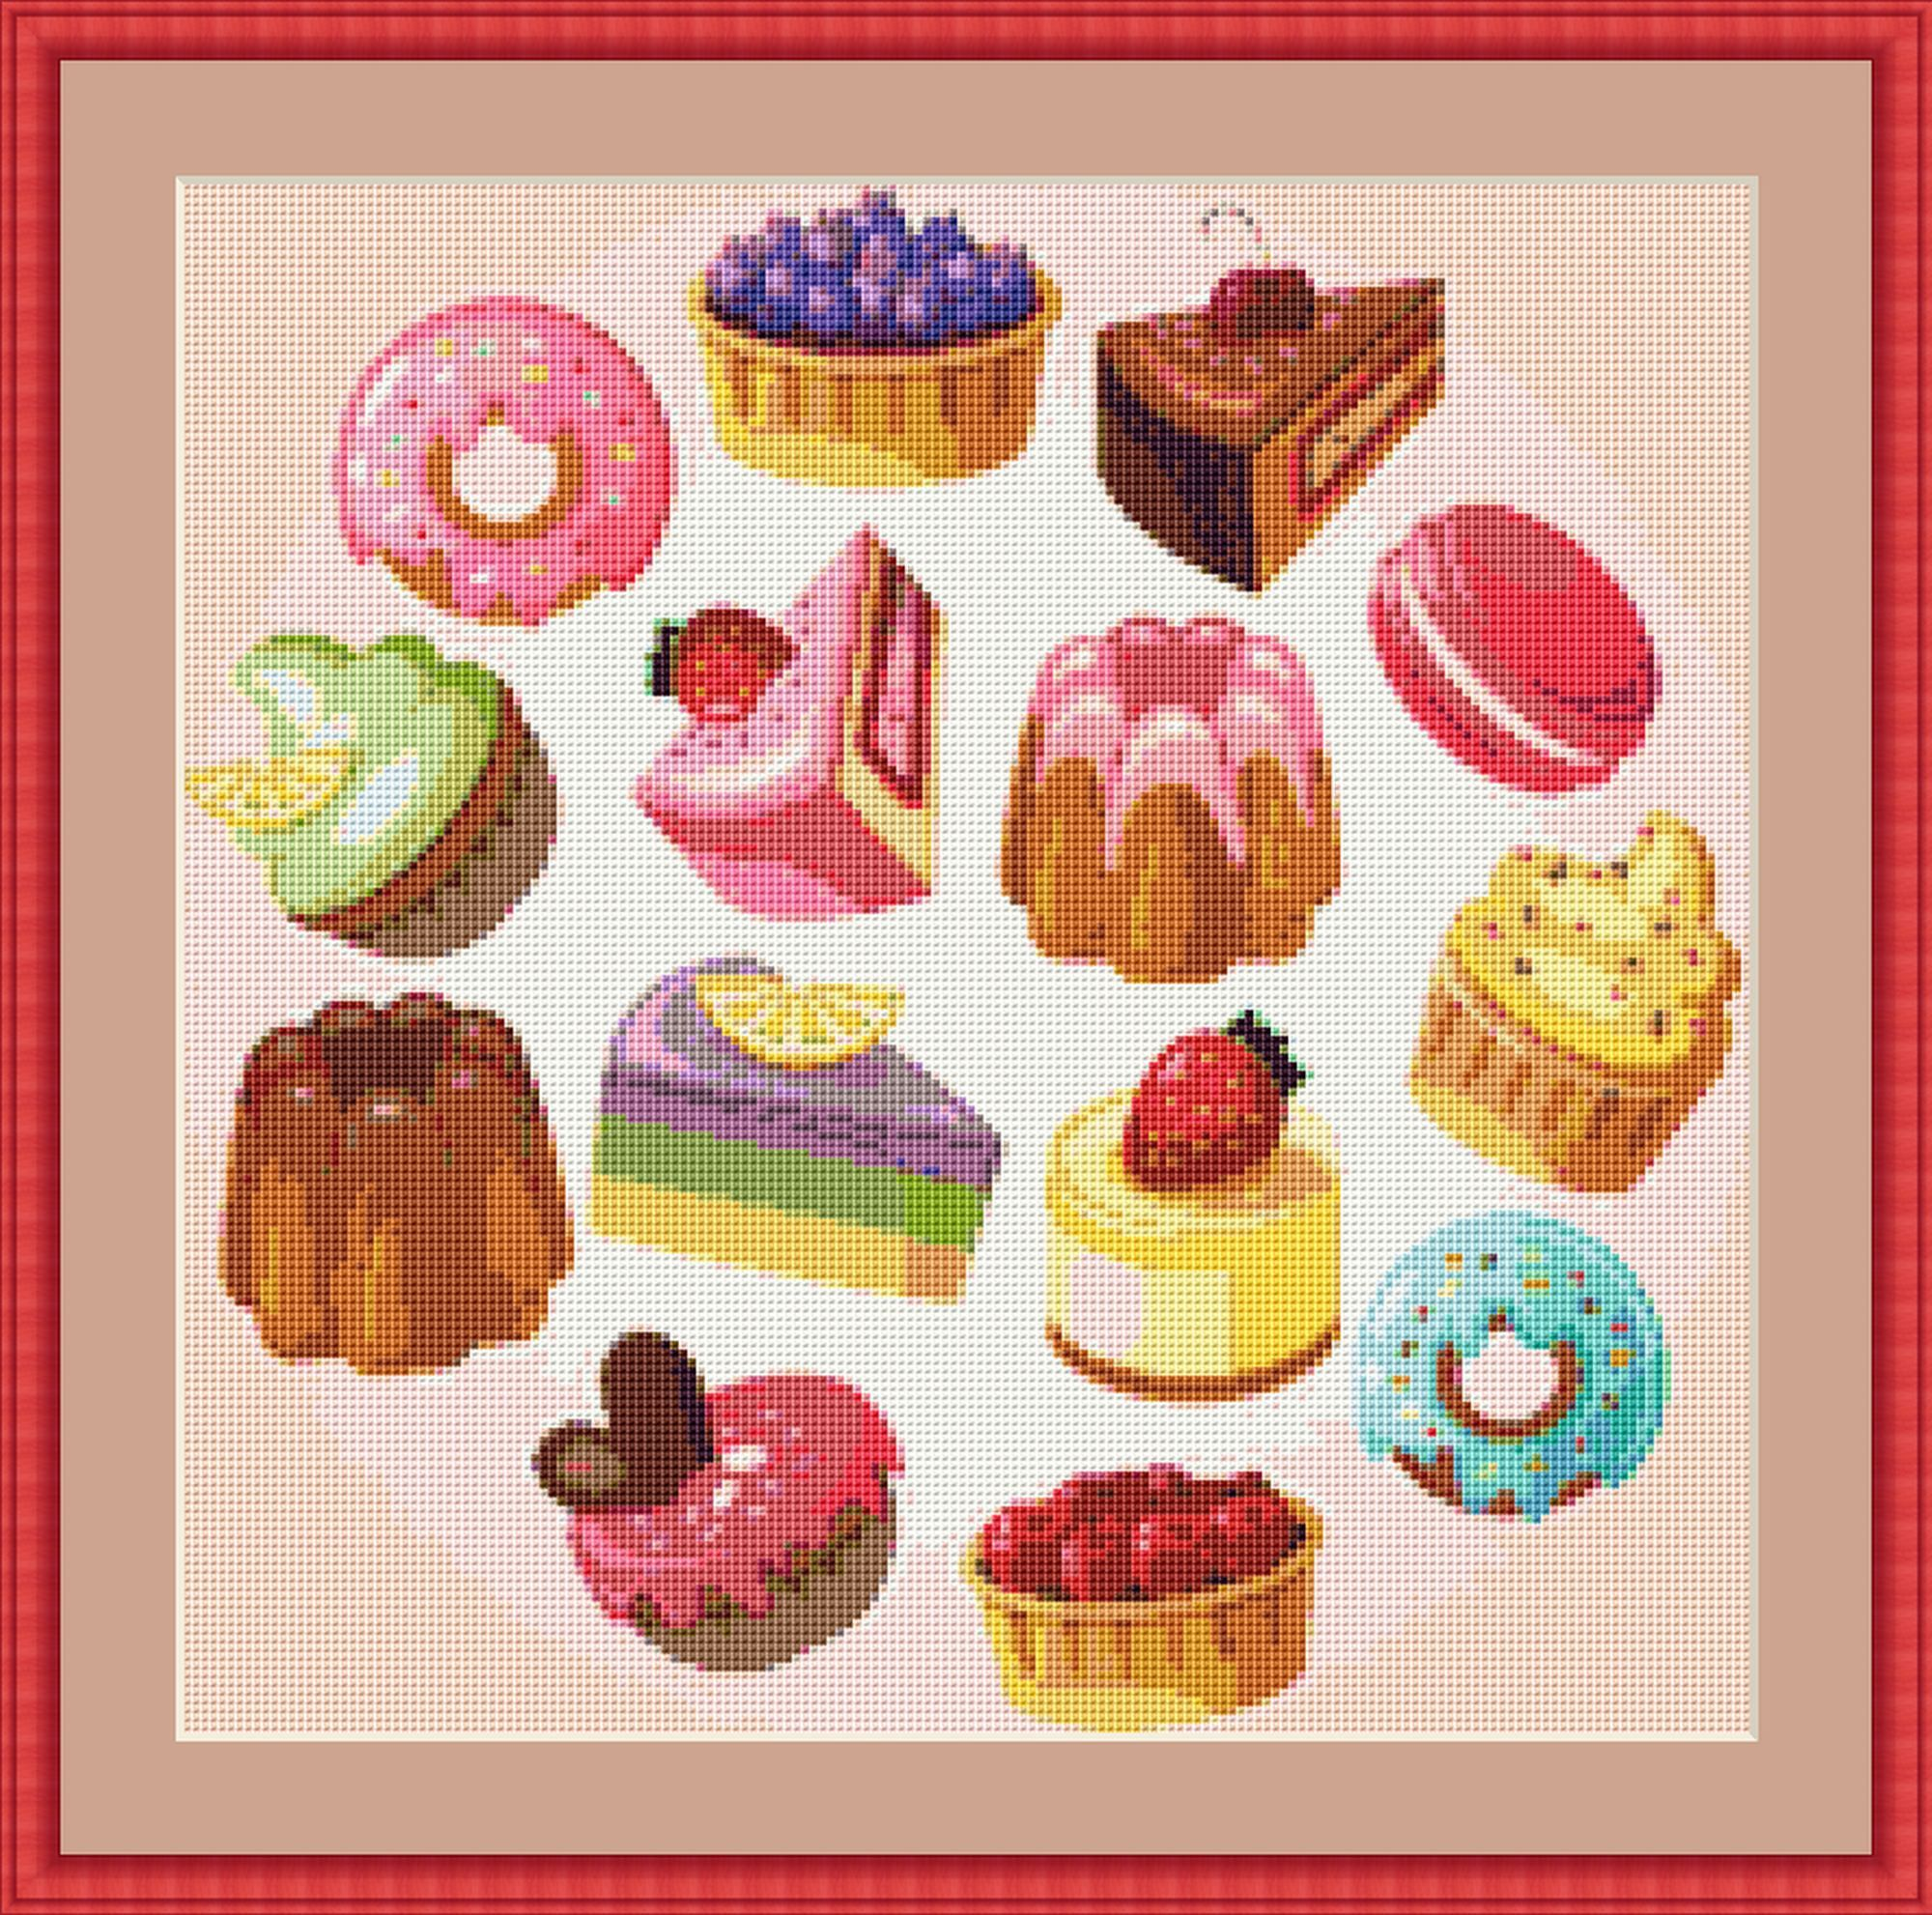 Color Symbols Charts DIY Christmas Baking Counted Cross Stitch Patterns